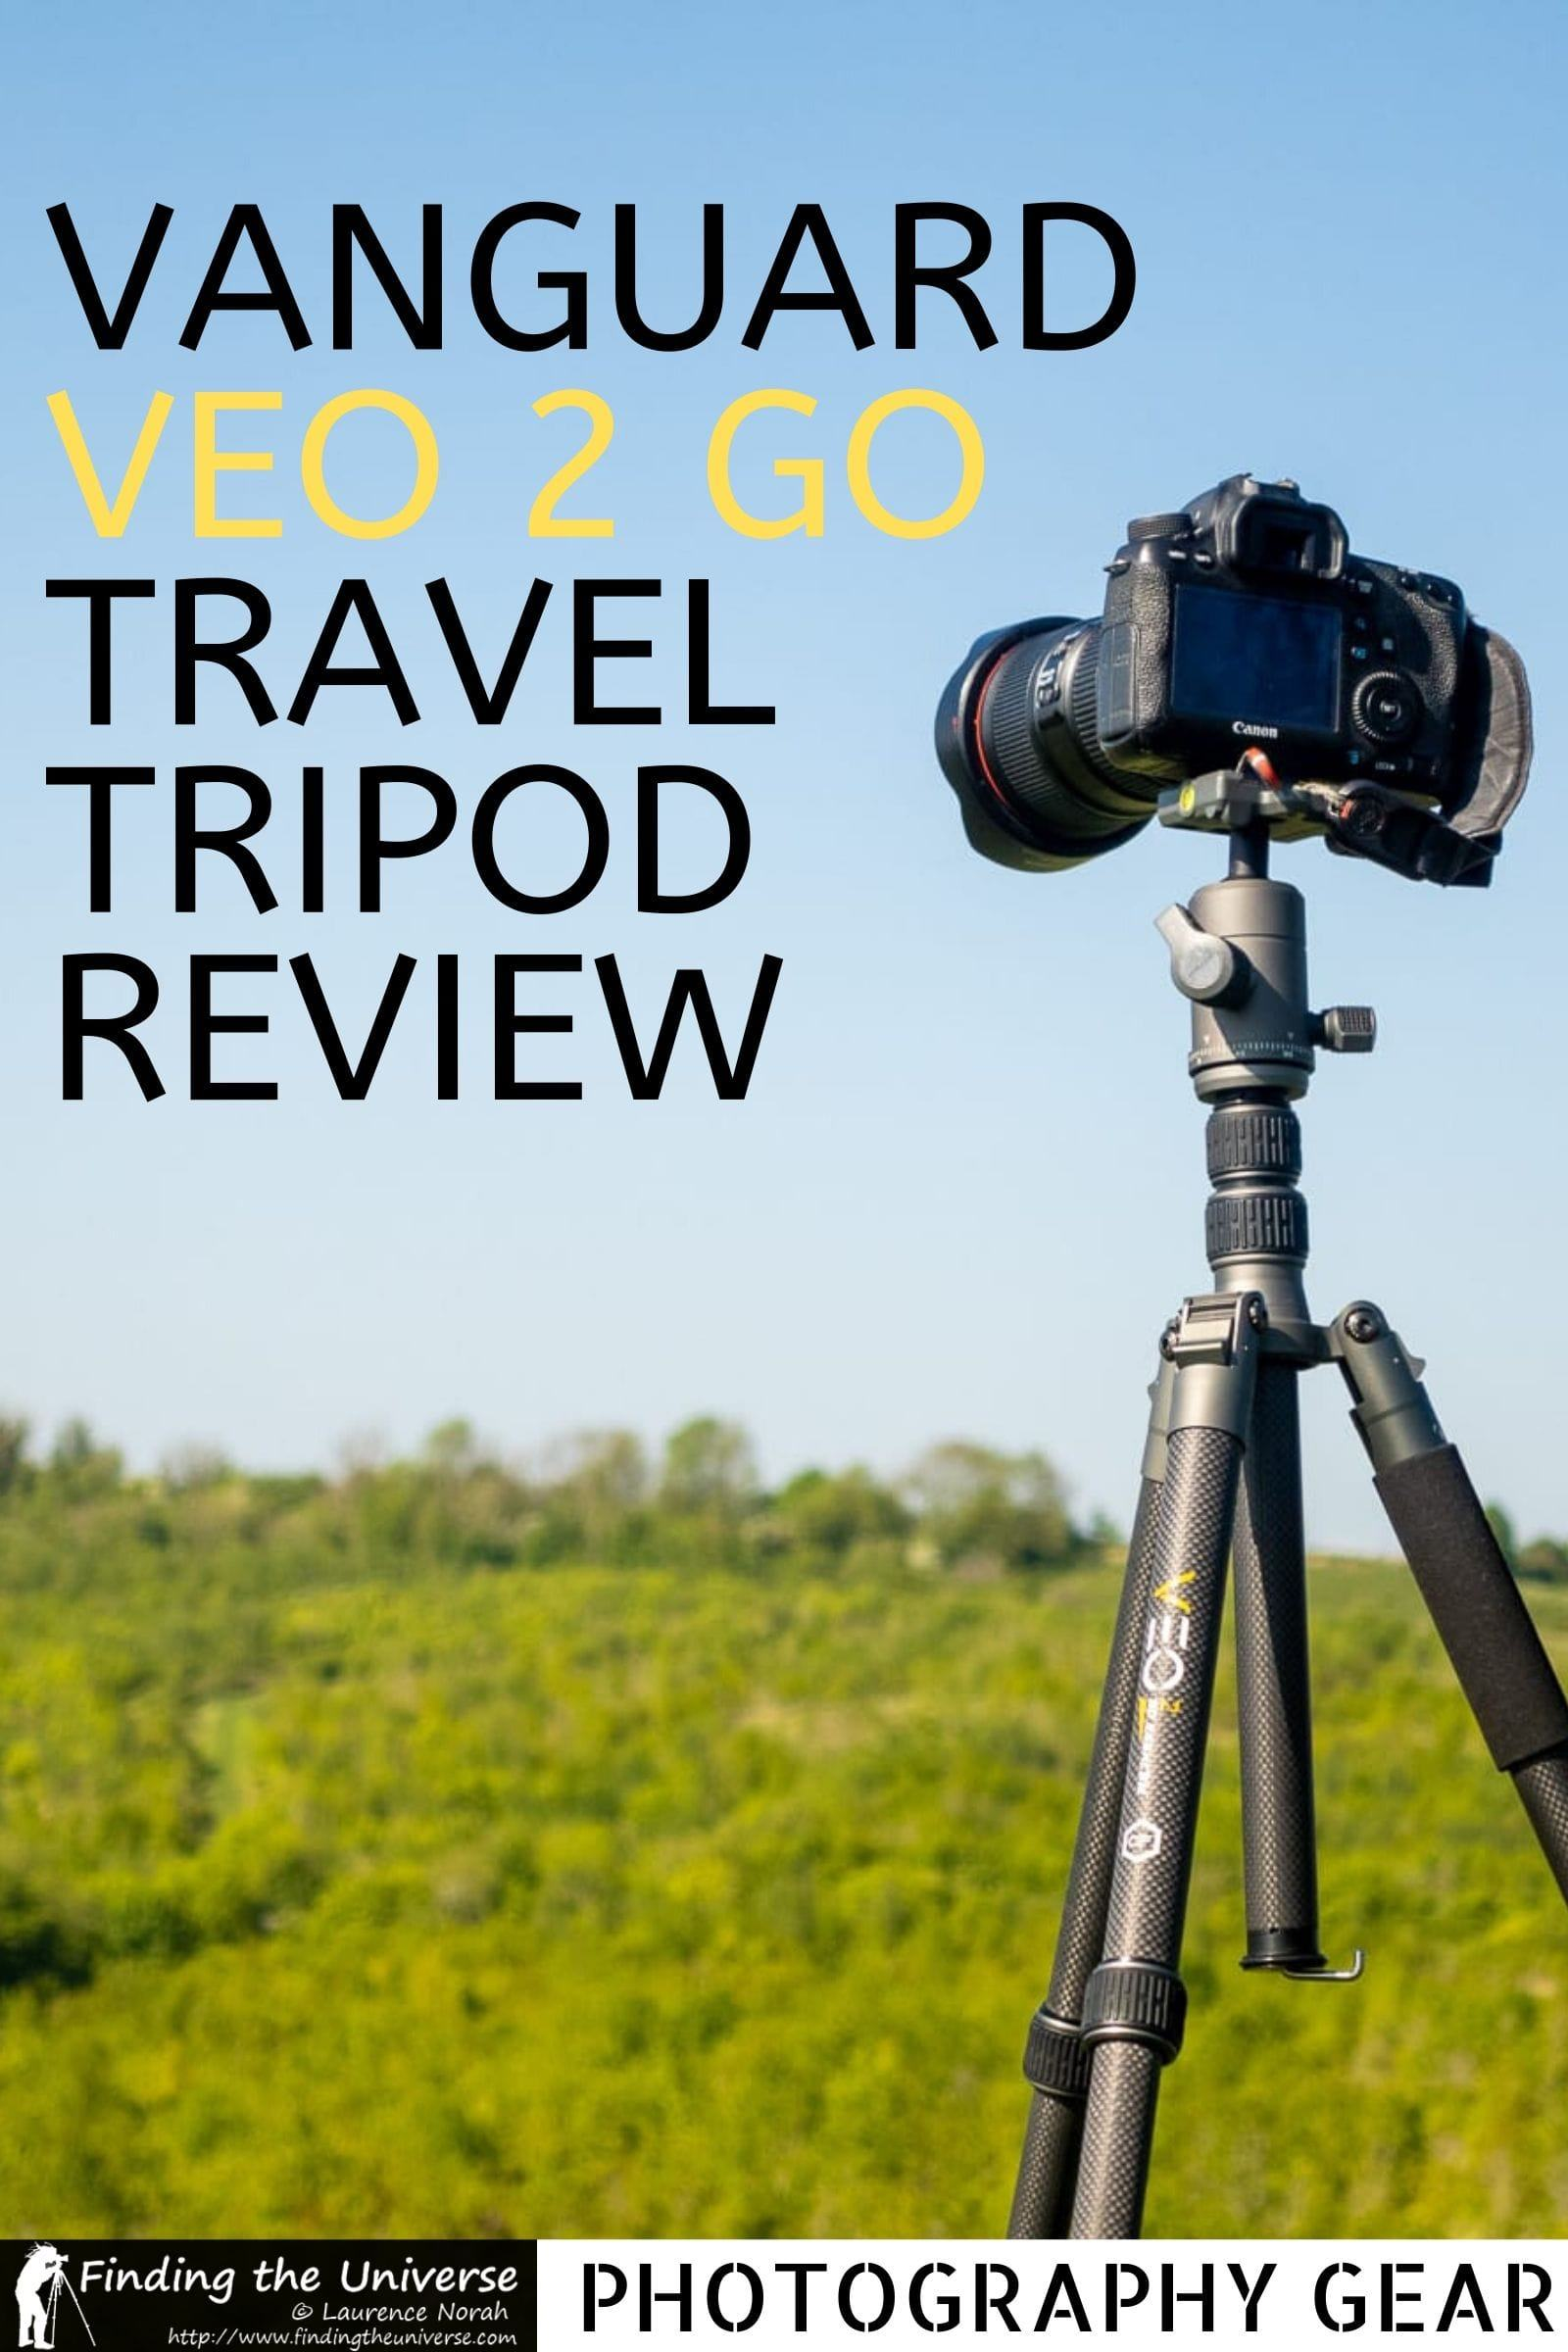 A detailed review of the Vanguard VEO 2 Go 265HCBM carbon fibre travel tripod. Covers all the features of the tripod plus thoughts on real world use.